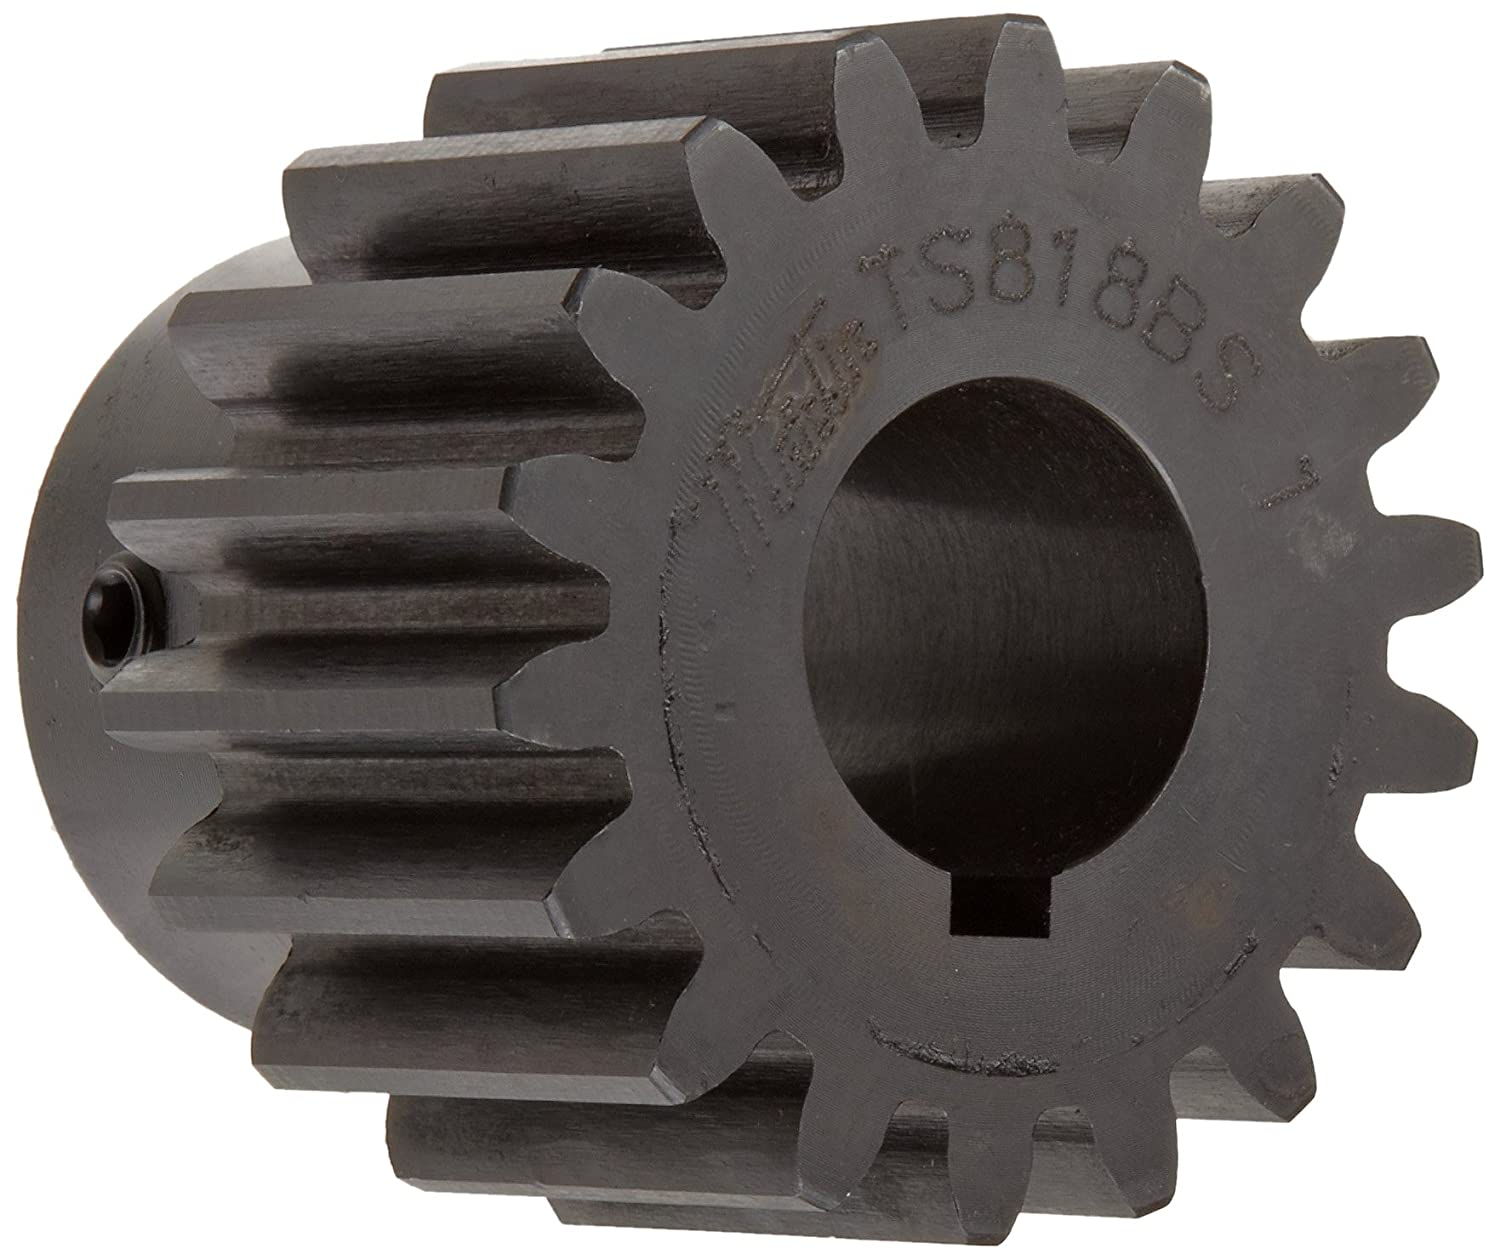 Martin TS2021 Spur Gear 20° Pressure Angle High Carbon Steel Inch 20 Pitch 1 2 Bore 1.15 OD 0.500 Face Width 21 Teeth